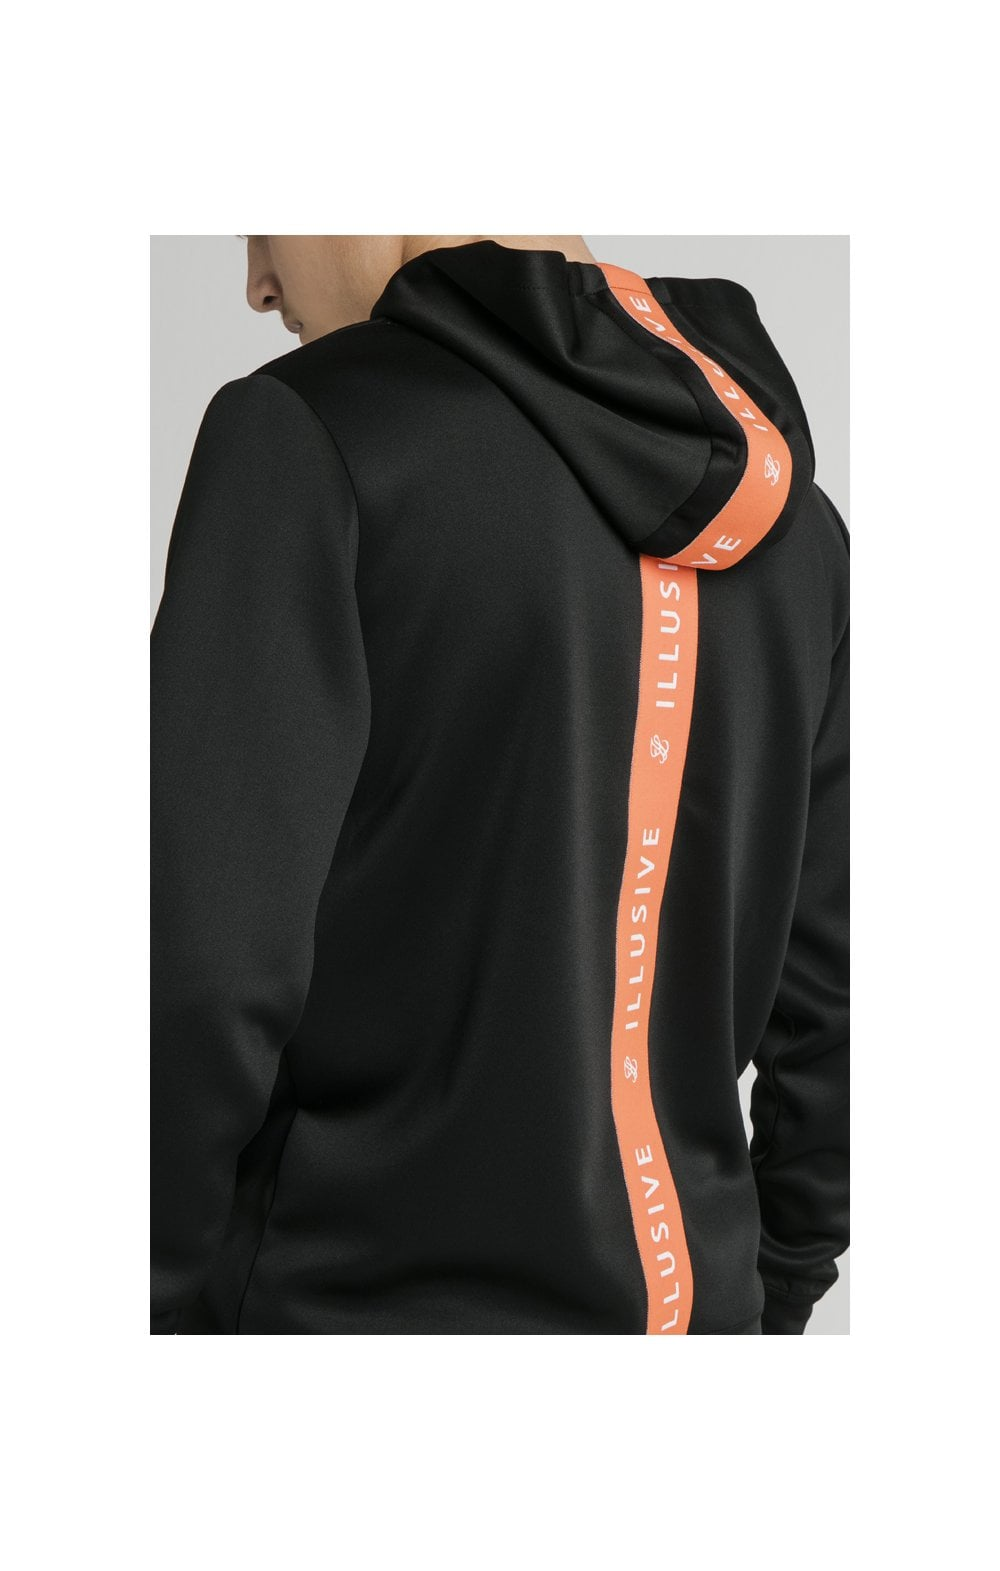 Illusive London Back Tape Zip Through Hoodie - Black (1)